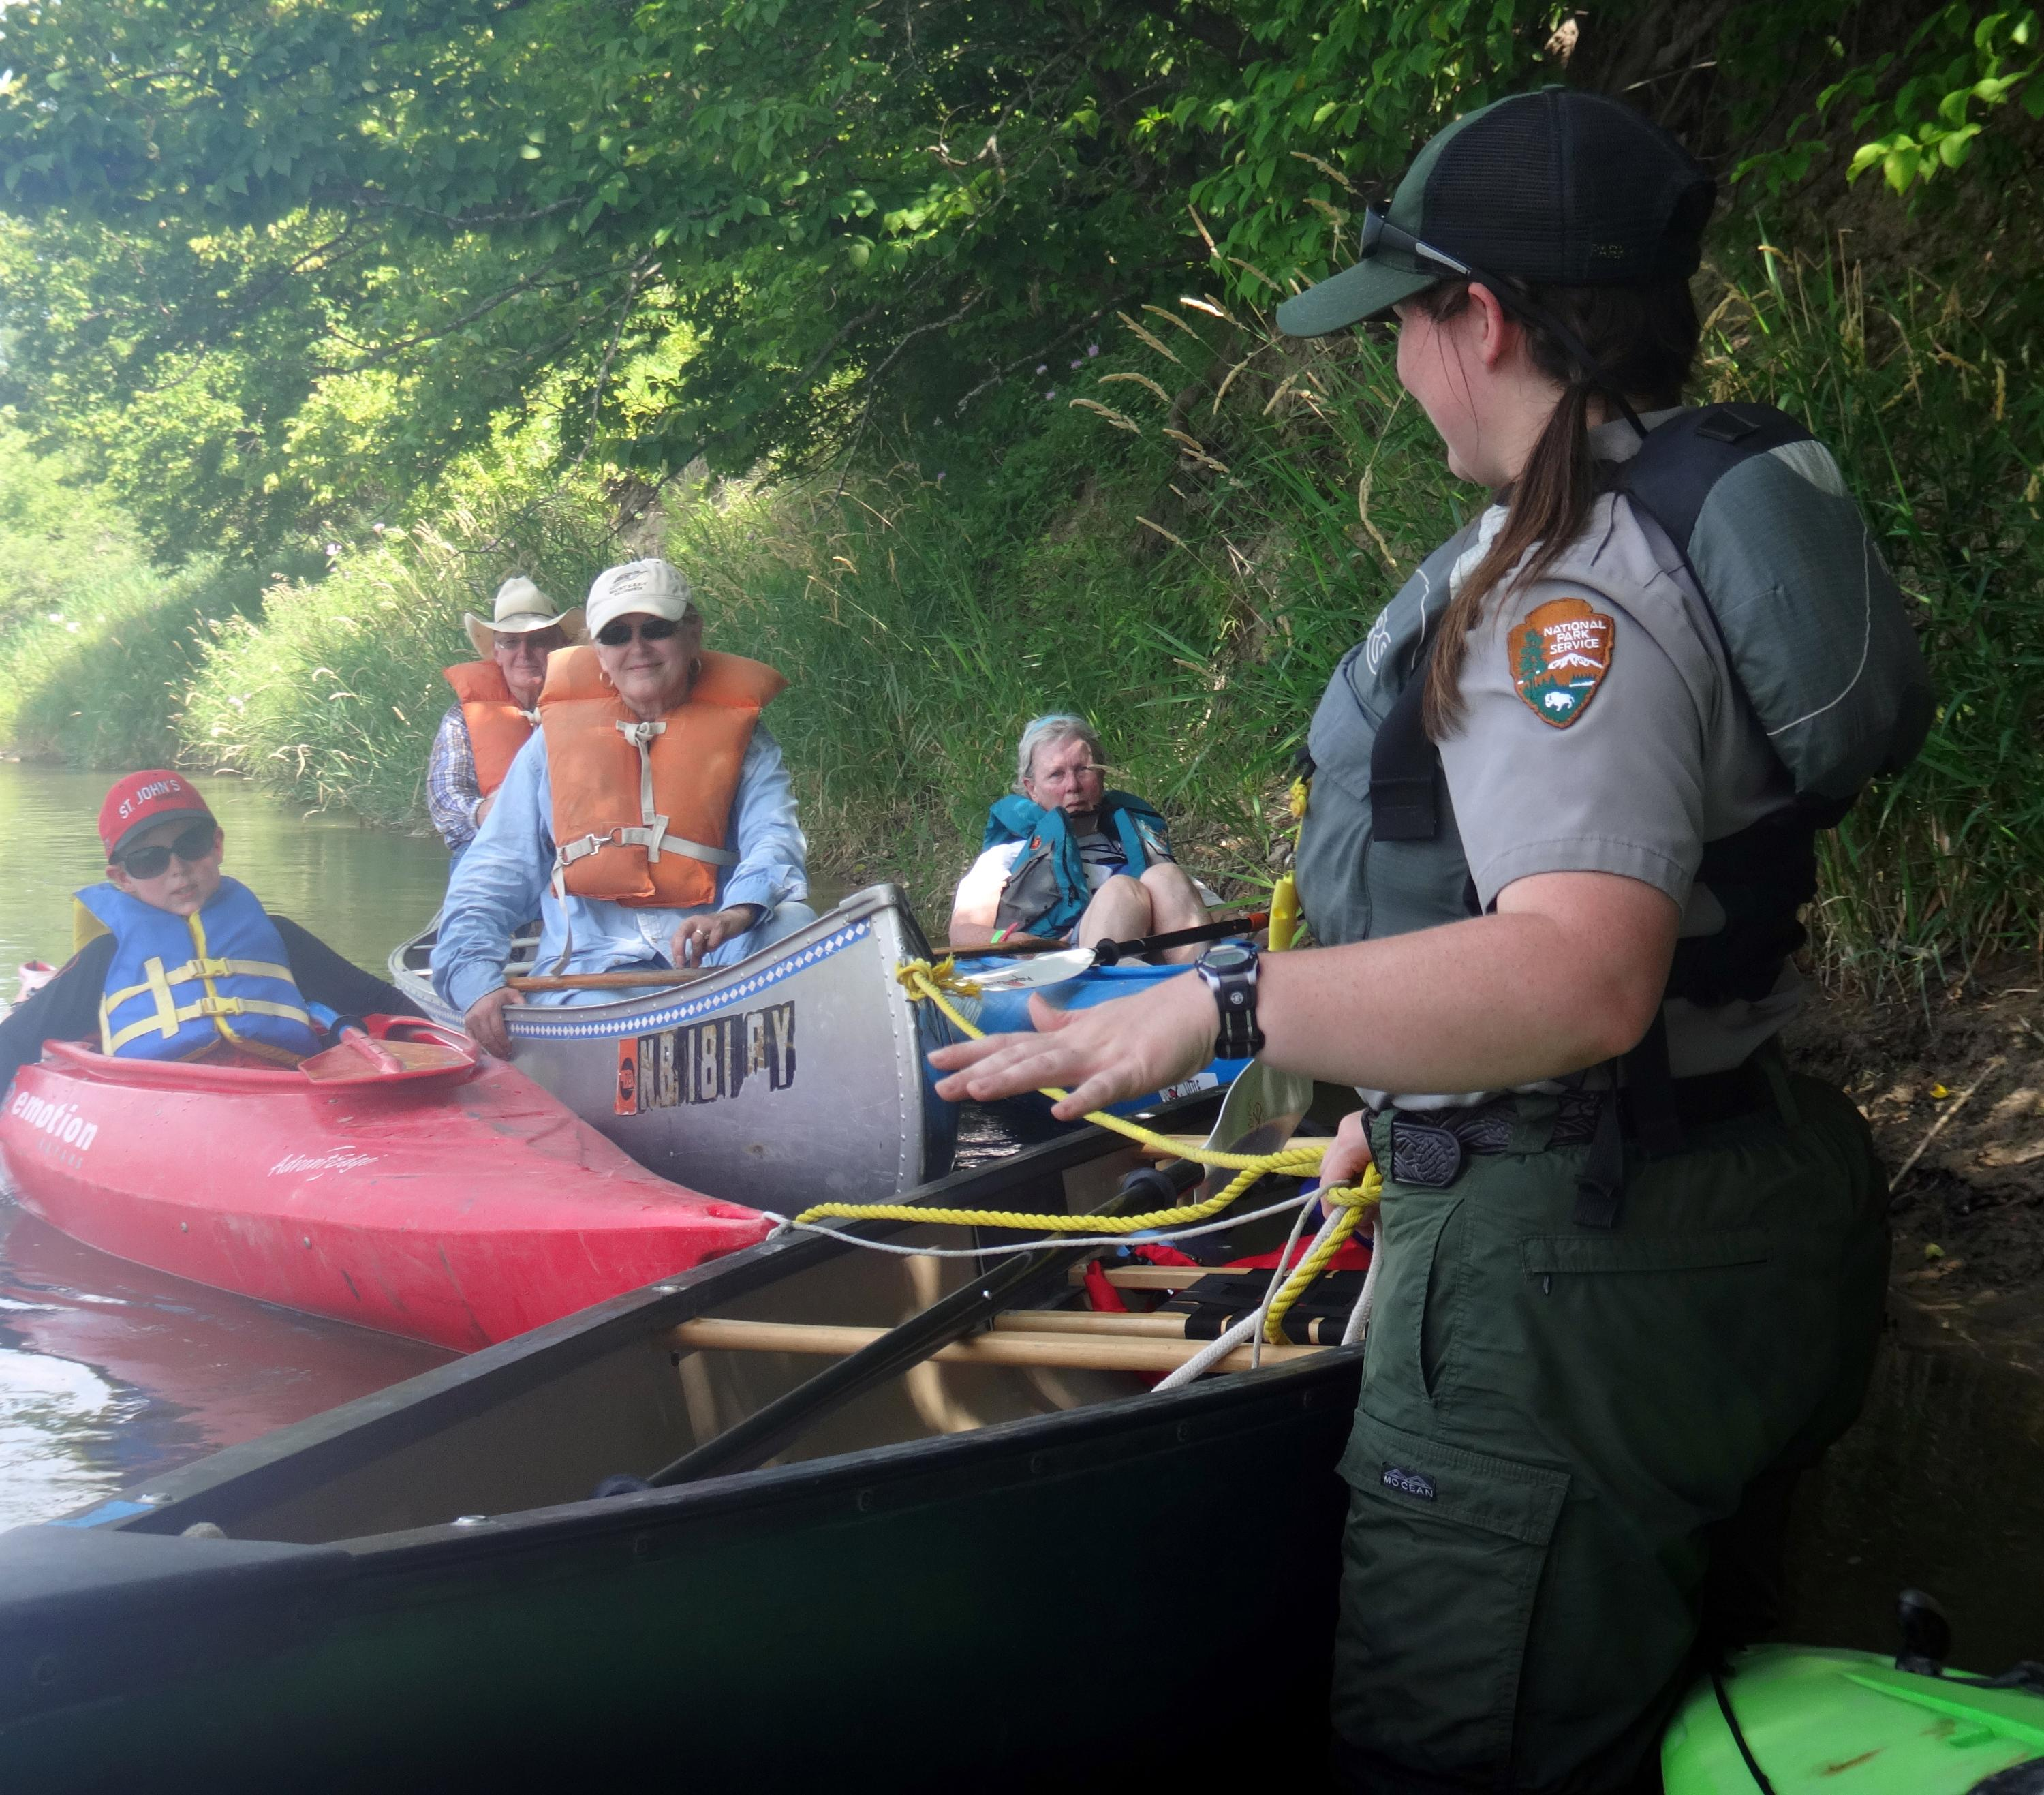 A park ranger points out special features about the Niobrara NSR to a group of paddlers.